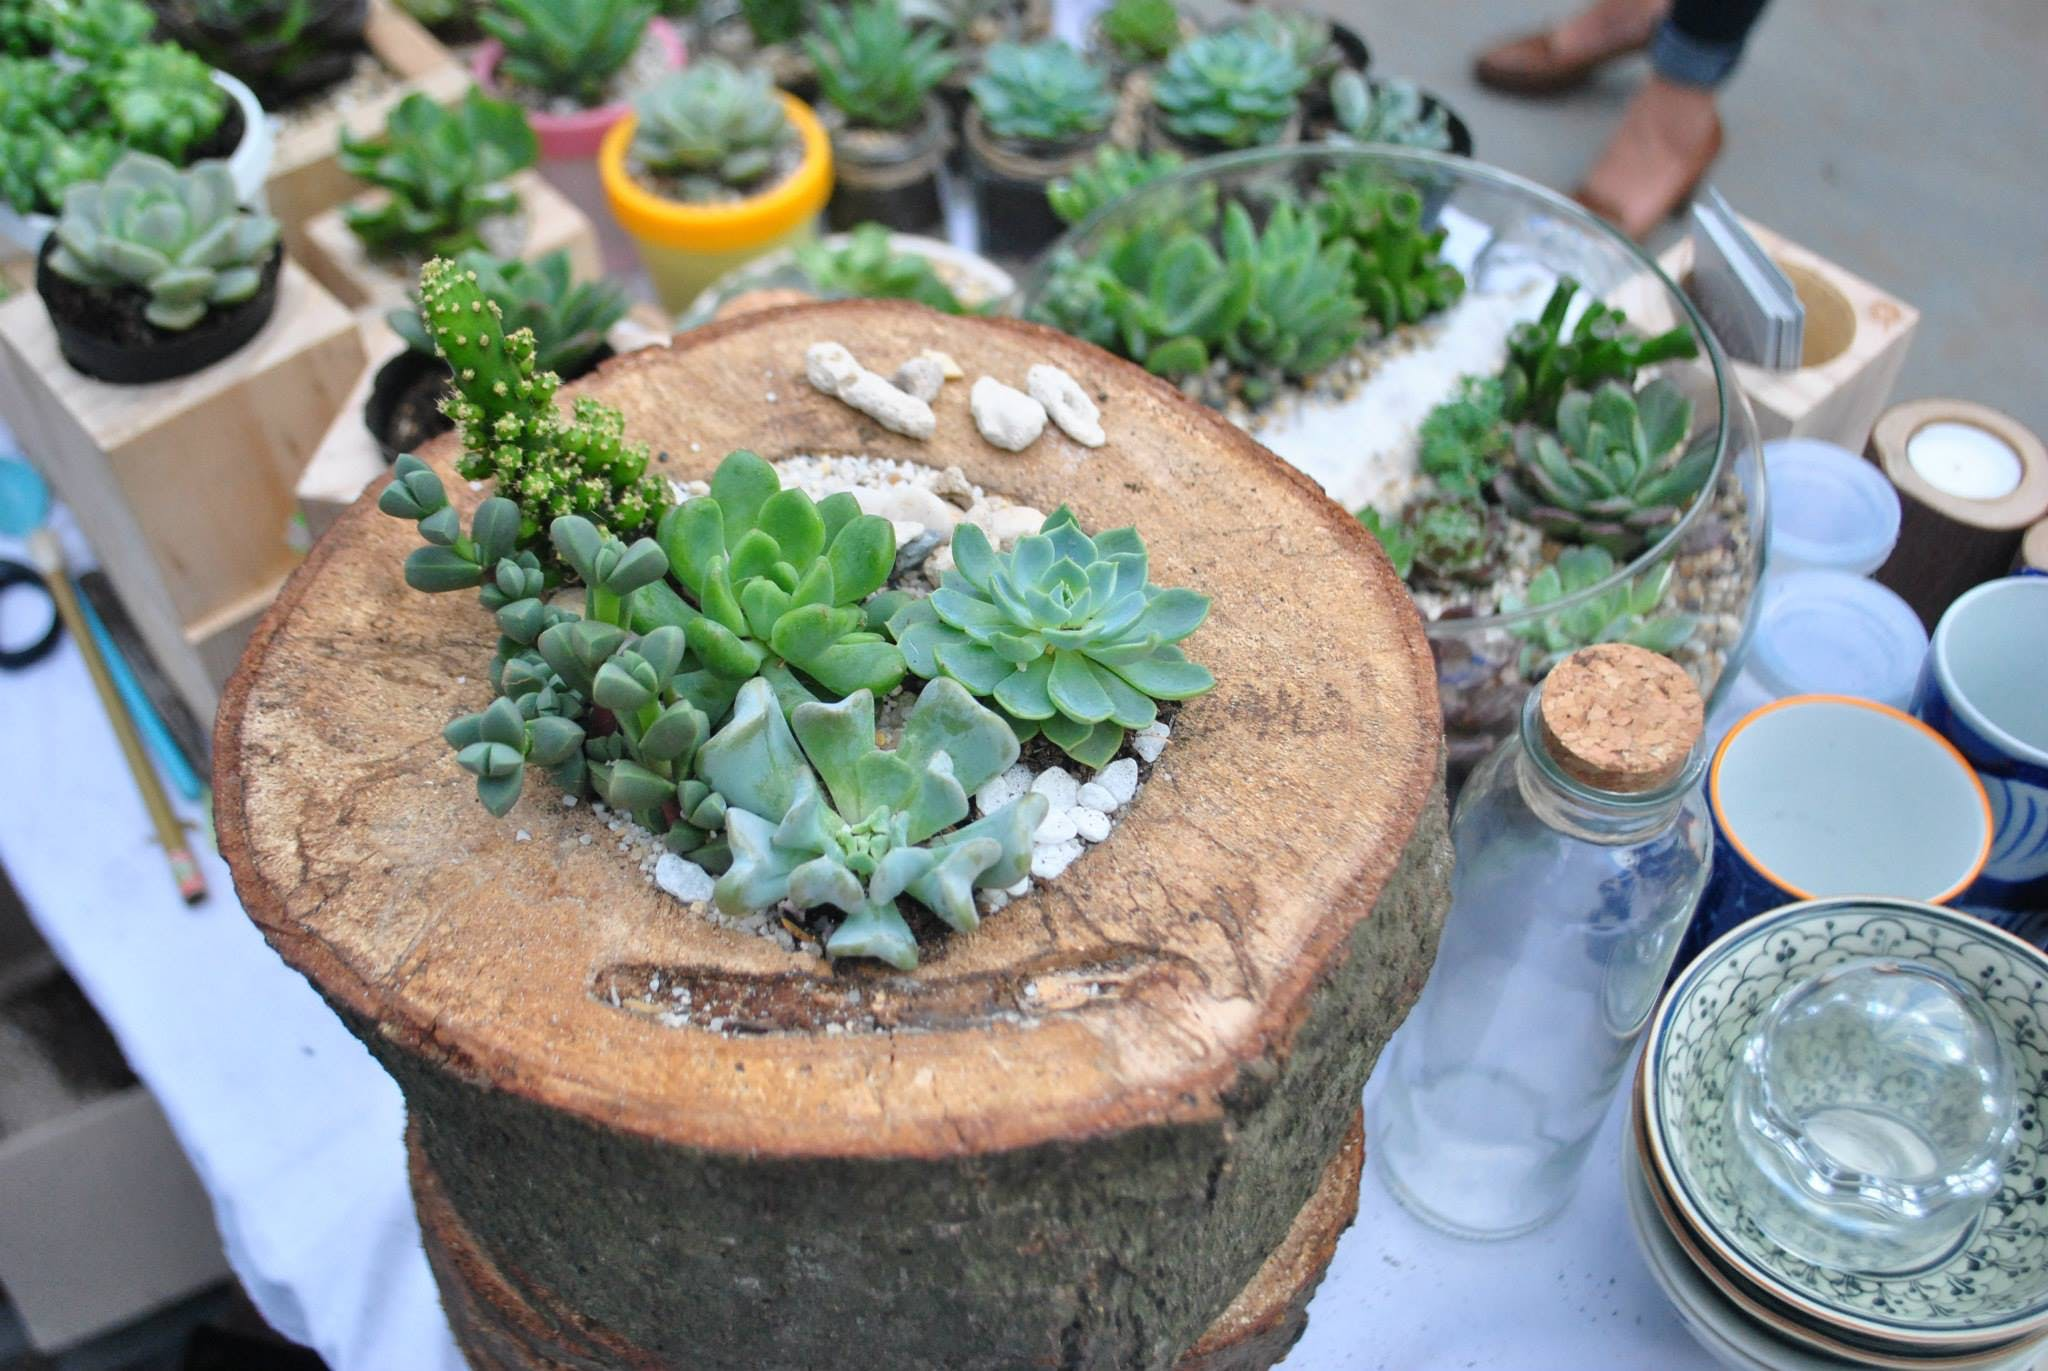 Free stock photo of terrarium, succulent plants, wood planter